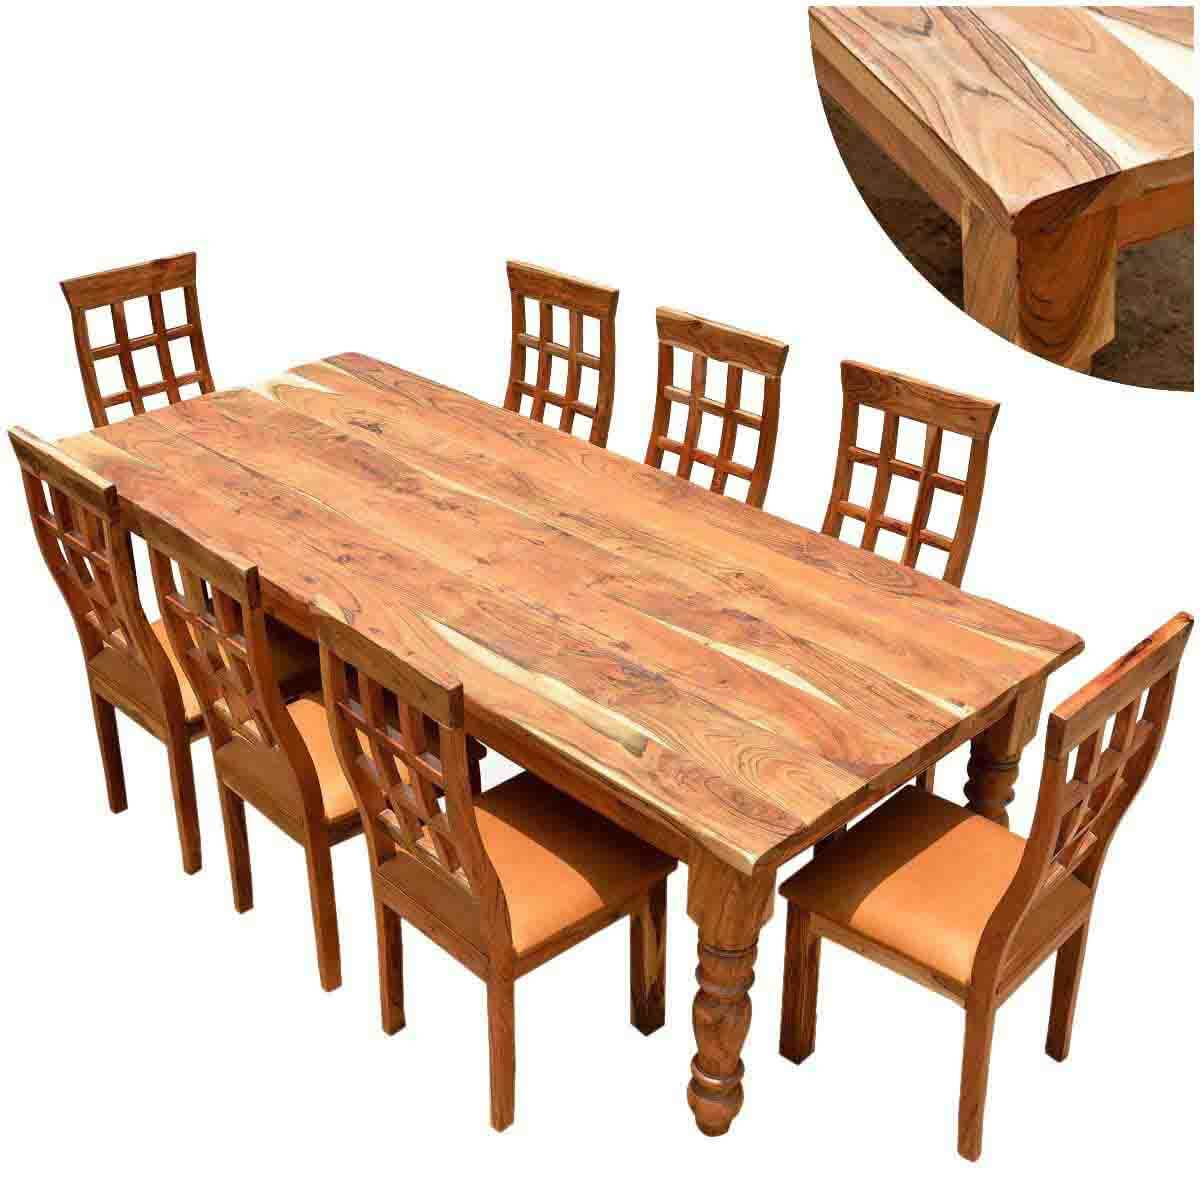 Rustic Wooden Dining Tables ~ Rustic dining table and chair sets sierra living concepts